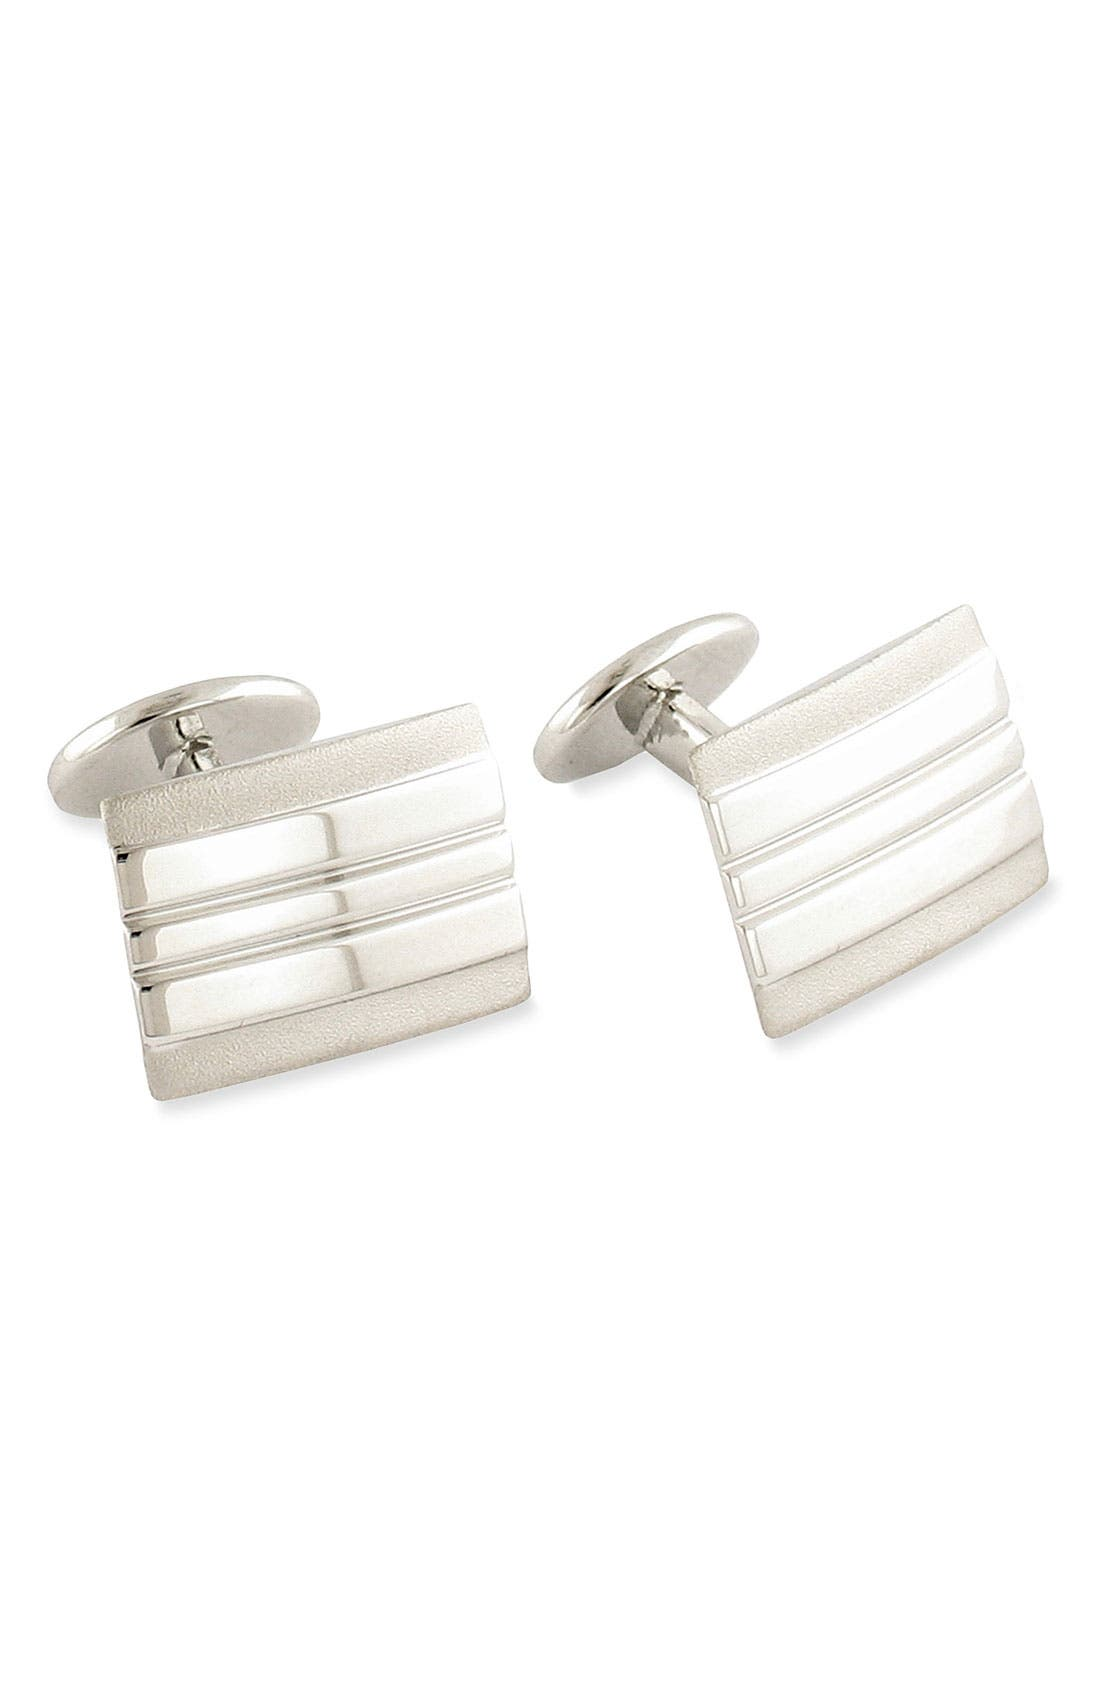 Sterling Silver Cuff Links,                             Main thumbnail 1, color,                             SILVER RECTANGLE